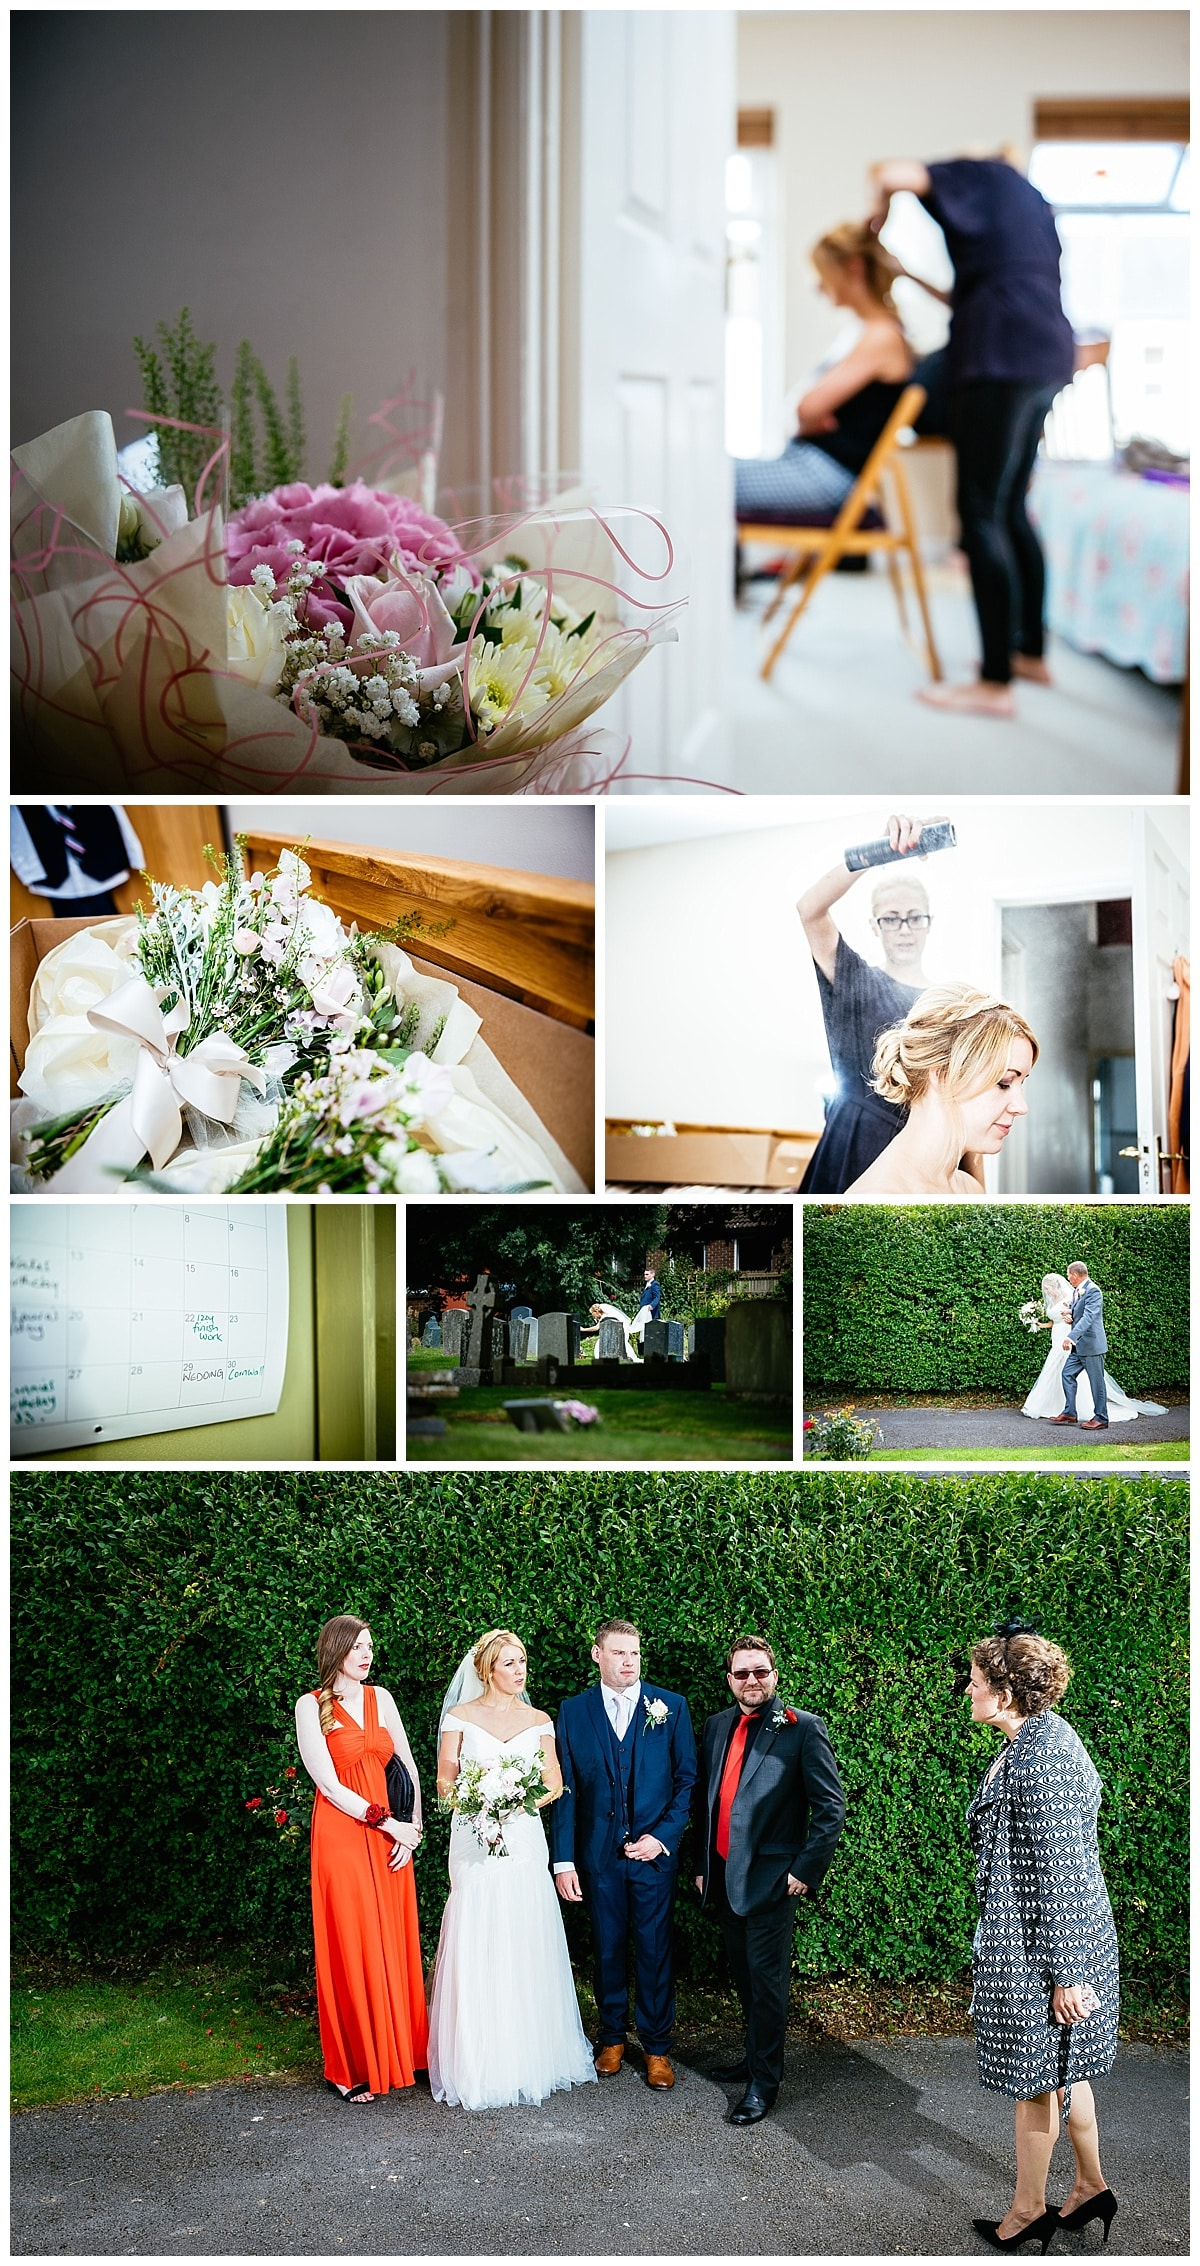 A wedding at the potted pig cardiff by the best alternative photographers in Wales